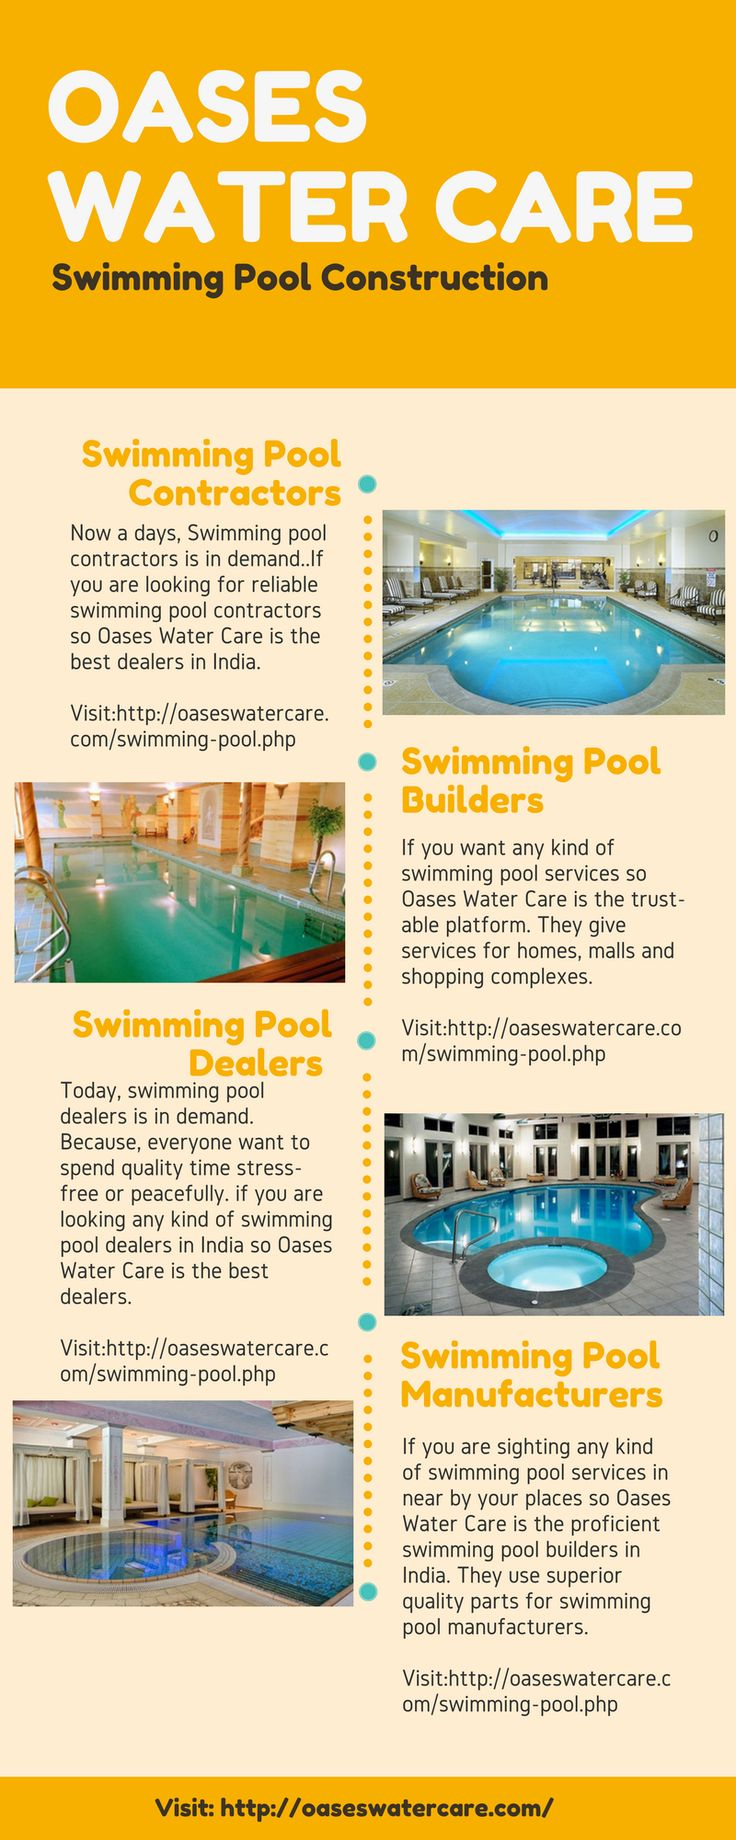 17 Best Ideas About Swimming Pool Construction On Pinterest Diy Swimming Pool Diy Pool And